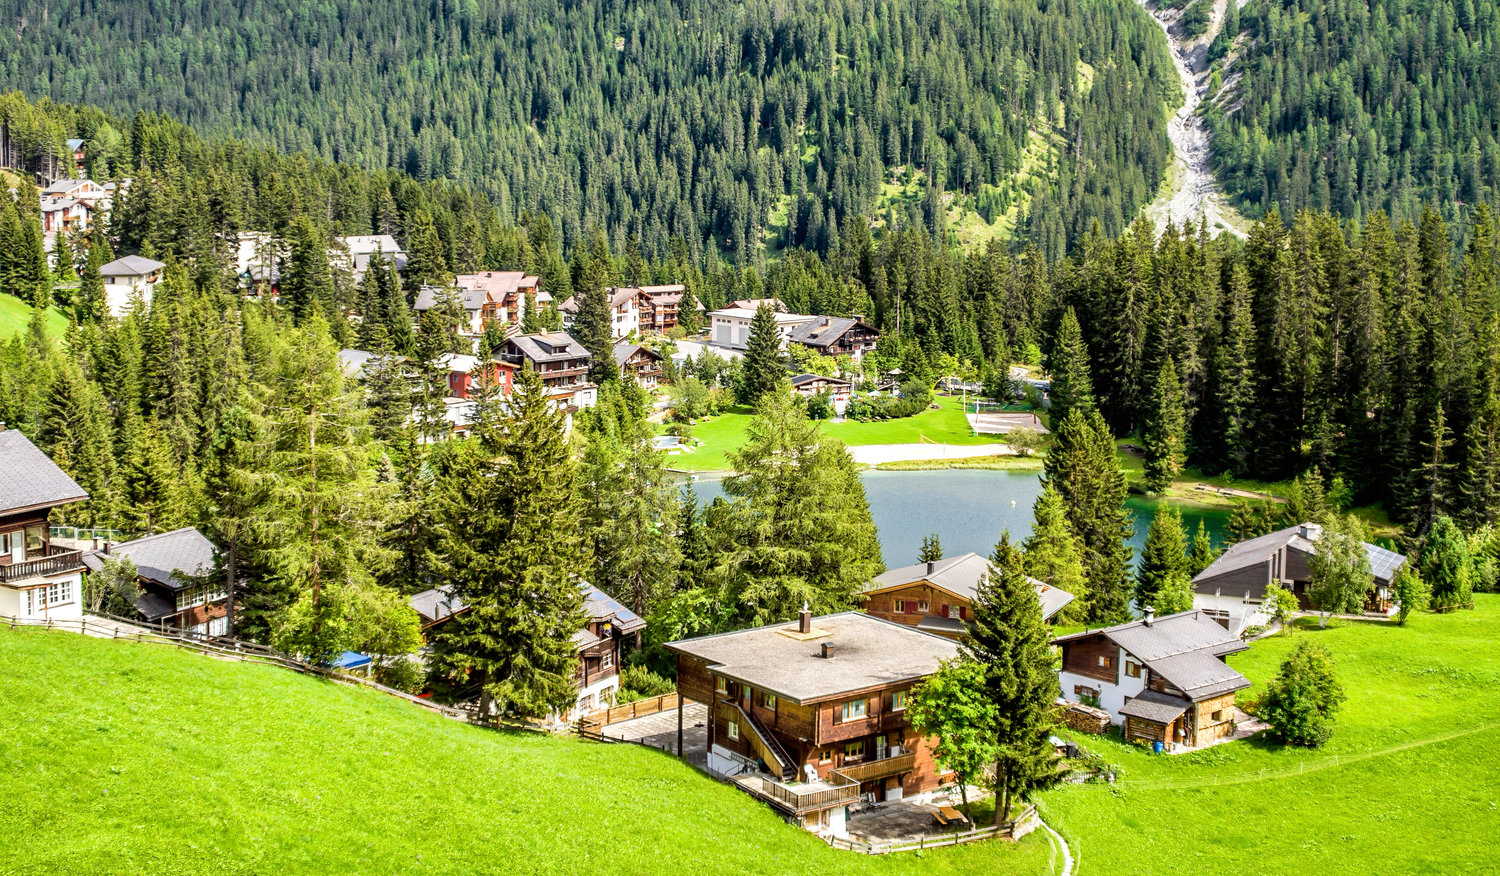 Arosa in the summer offers some stunning views